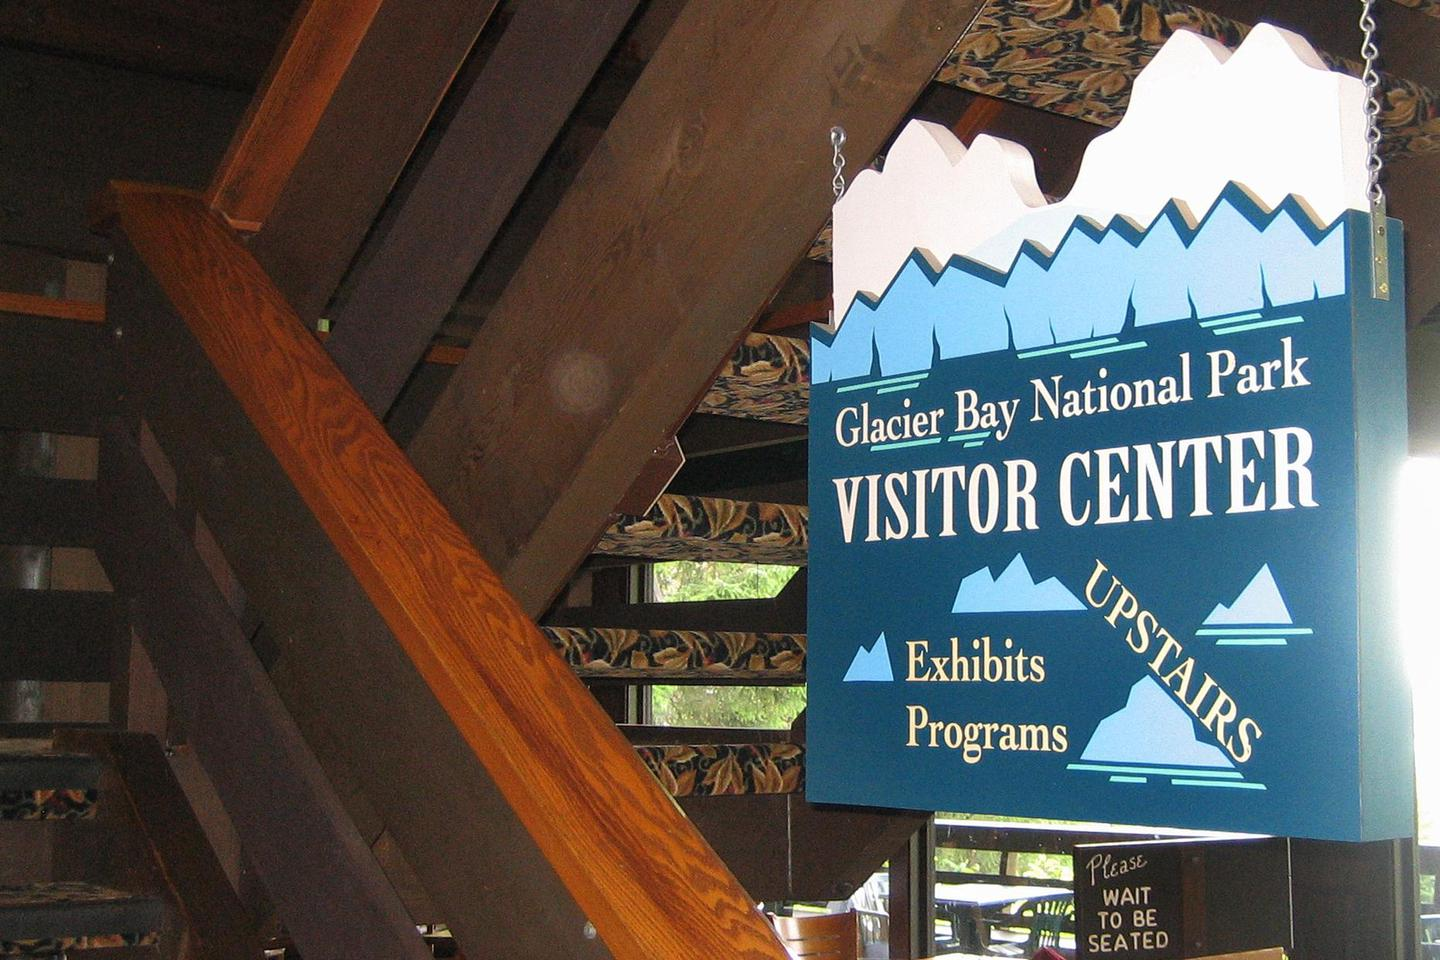 Glacier Bay Lodge Upstairs Visitor Center SignHead upstairs after you enter the Glacier Bay Lodge to find the Visitor Center.